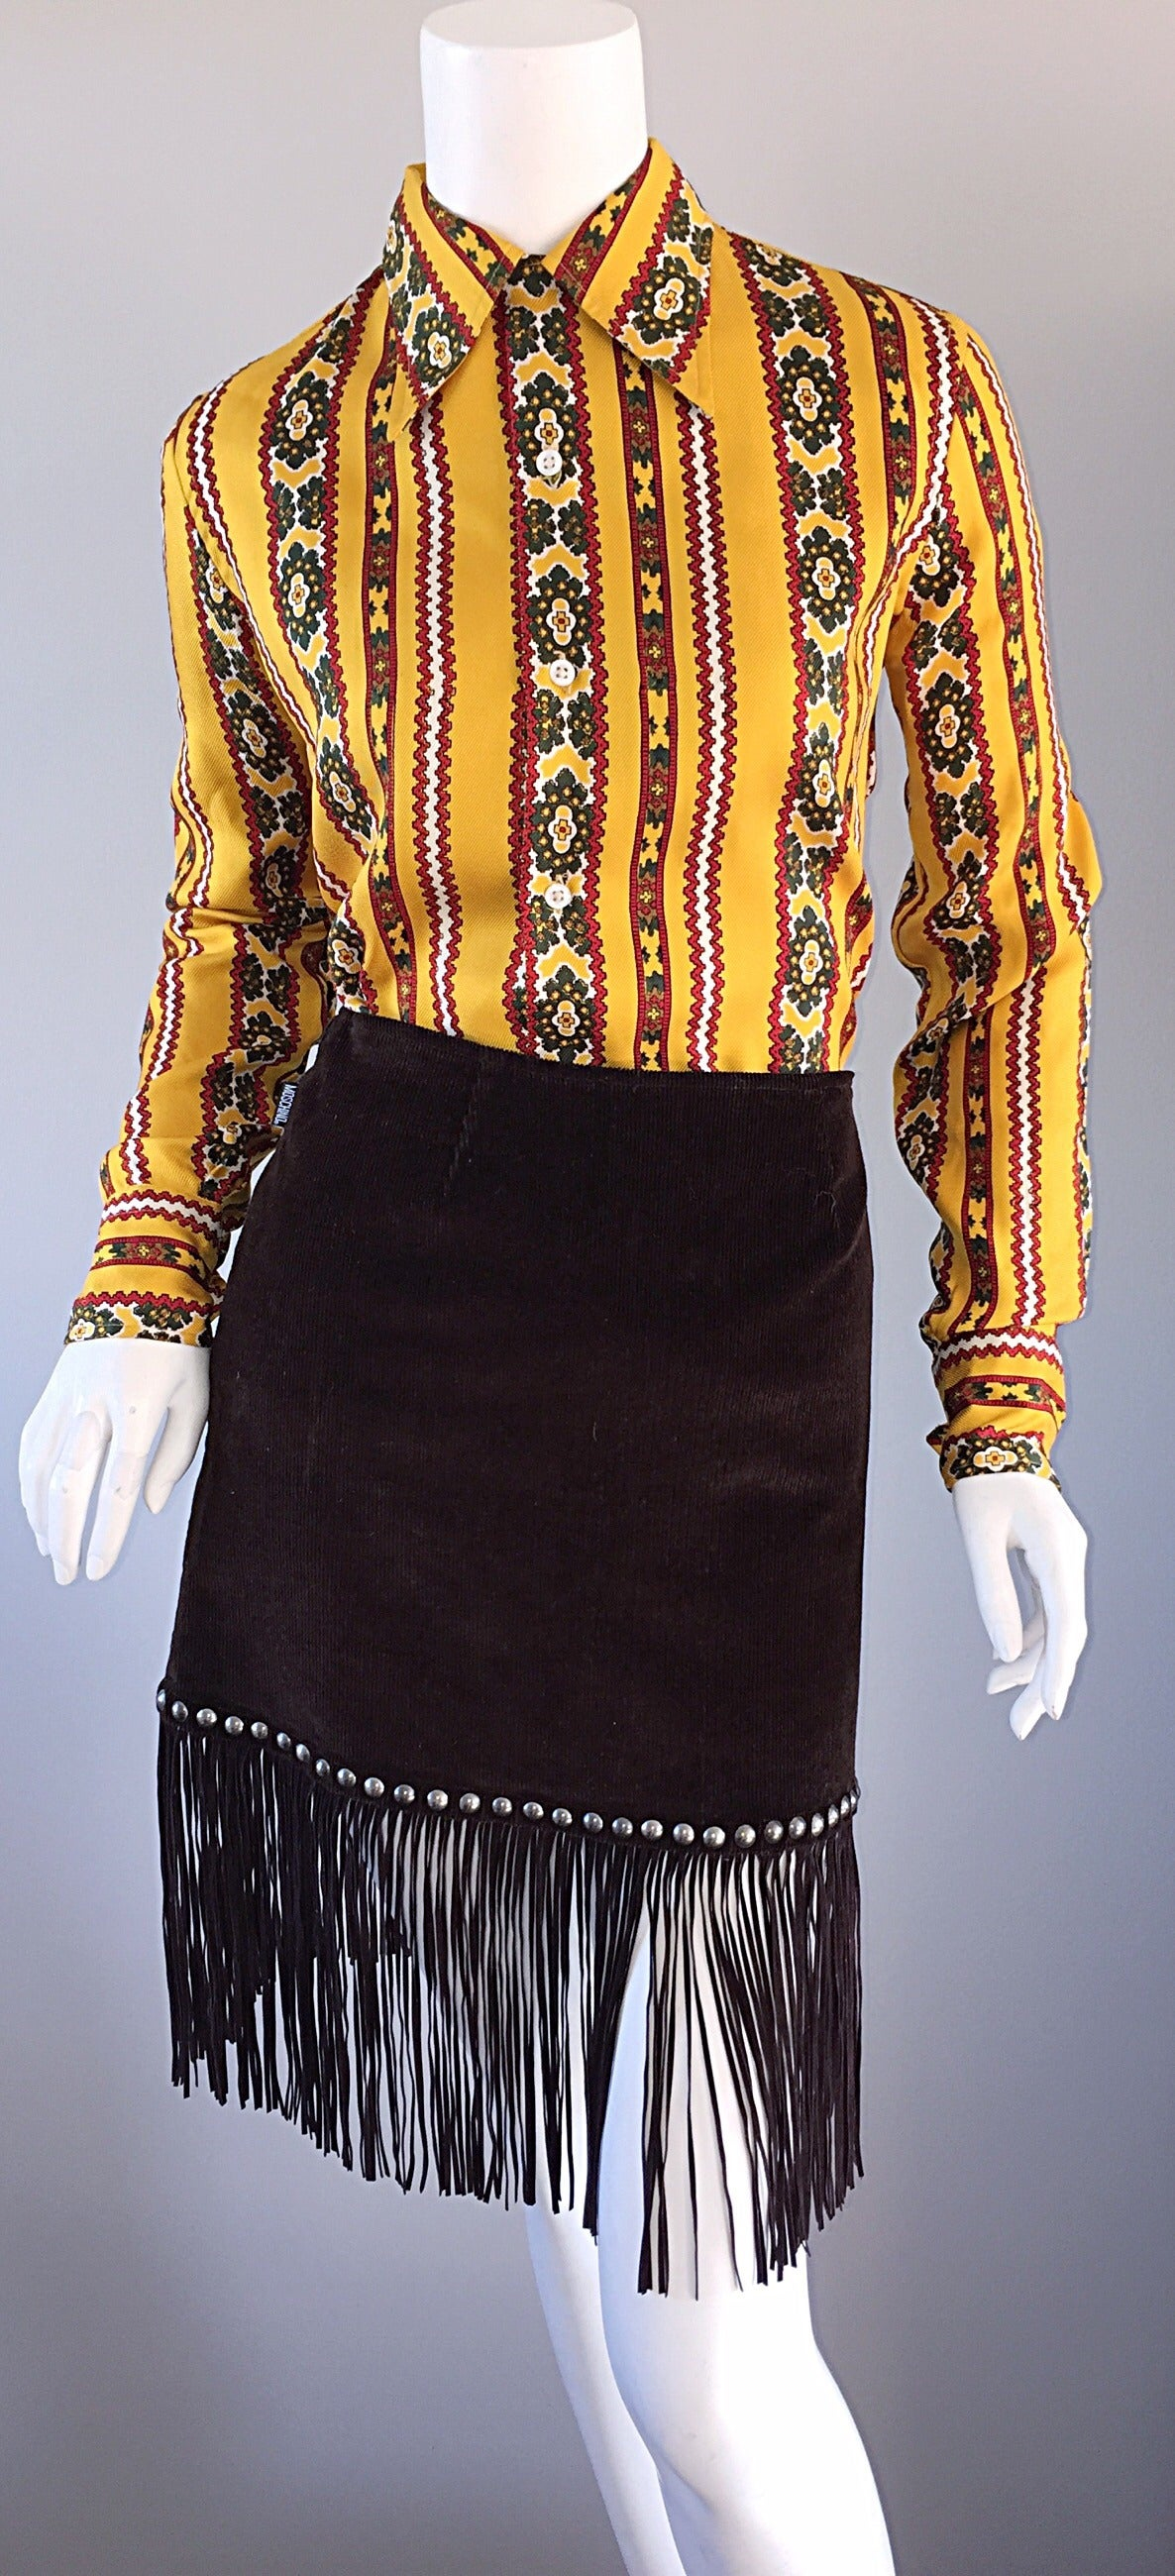 "Super rare vintage 80s Ralph Lauren ""Blue Label"" silk blouse! Marigold color, with hues of burgundy, green, white and yellow. 100% silk. Awesome tribal print! Buttons up the front, with hidden button at side collar. Great tailored fit. Looks great"